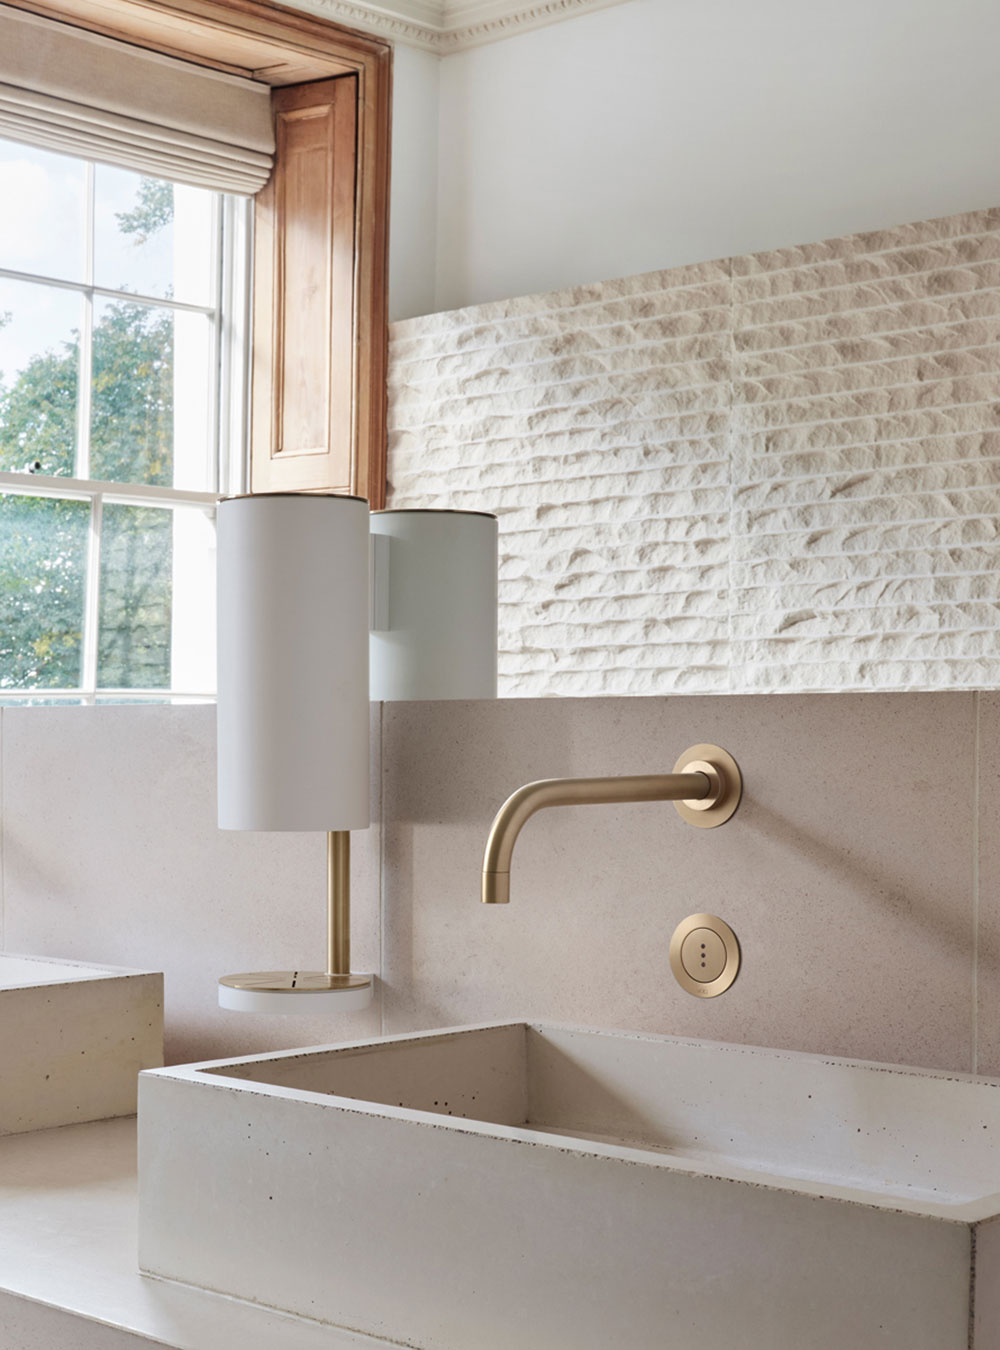 4321: Build-in basin tap with on-off sensor for 'hands free' operation. For vertical mounting. Sensor a...